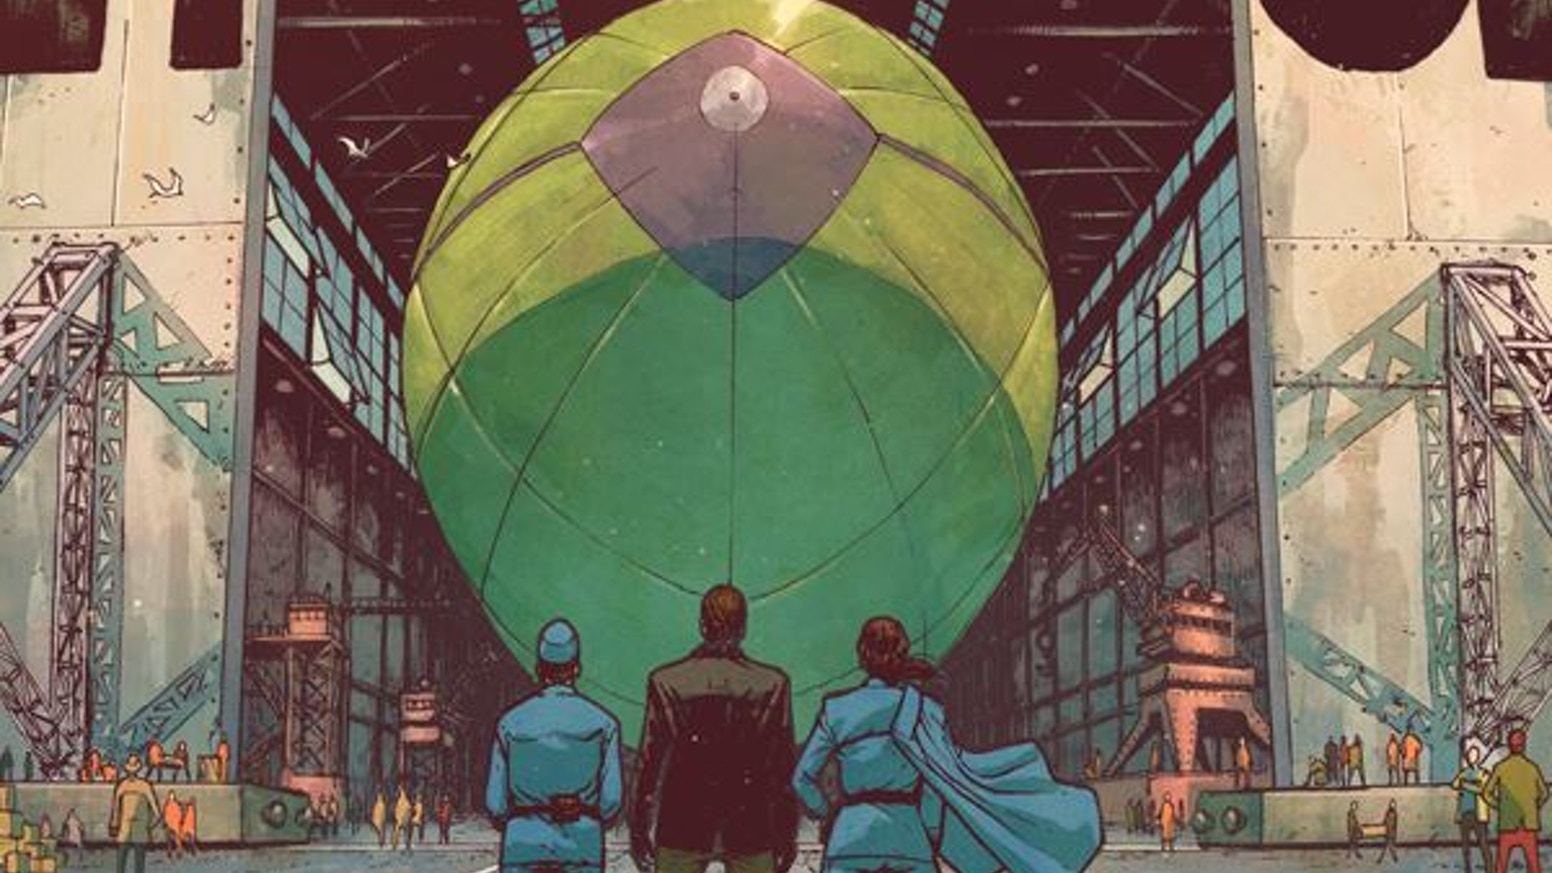 An airship story of loyalty and revenge.